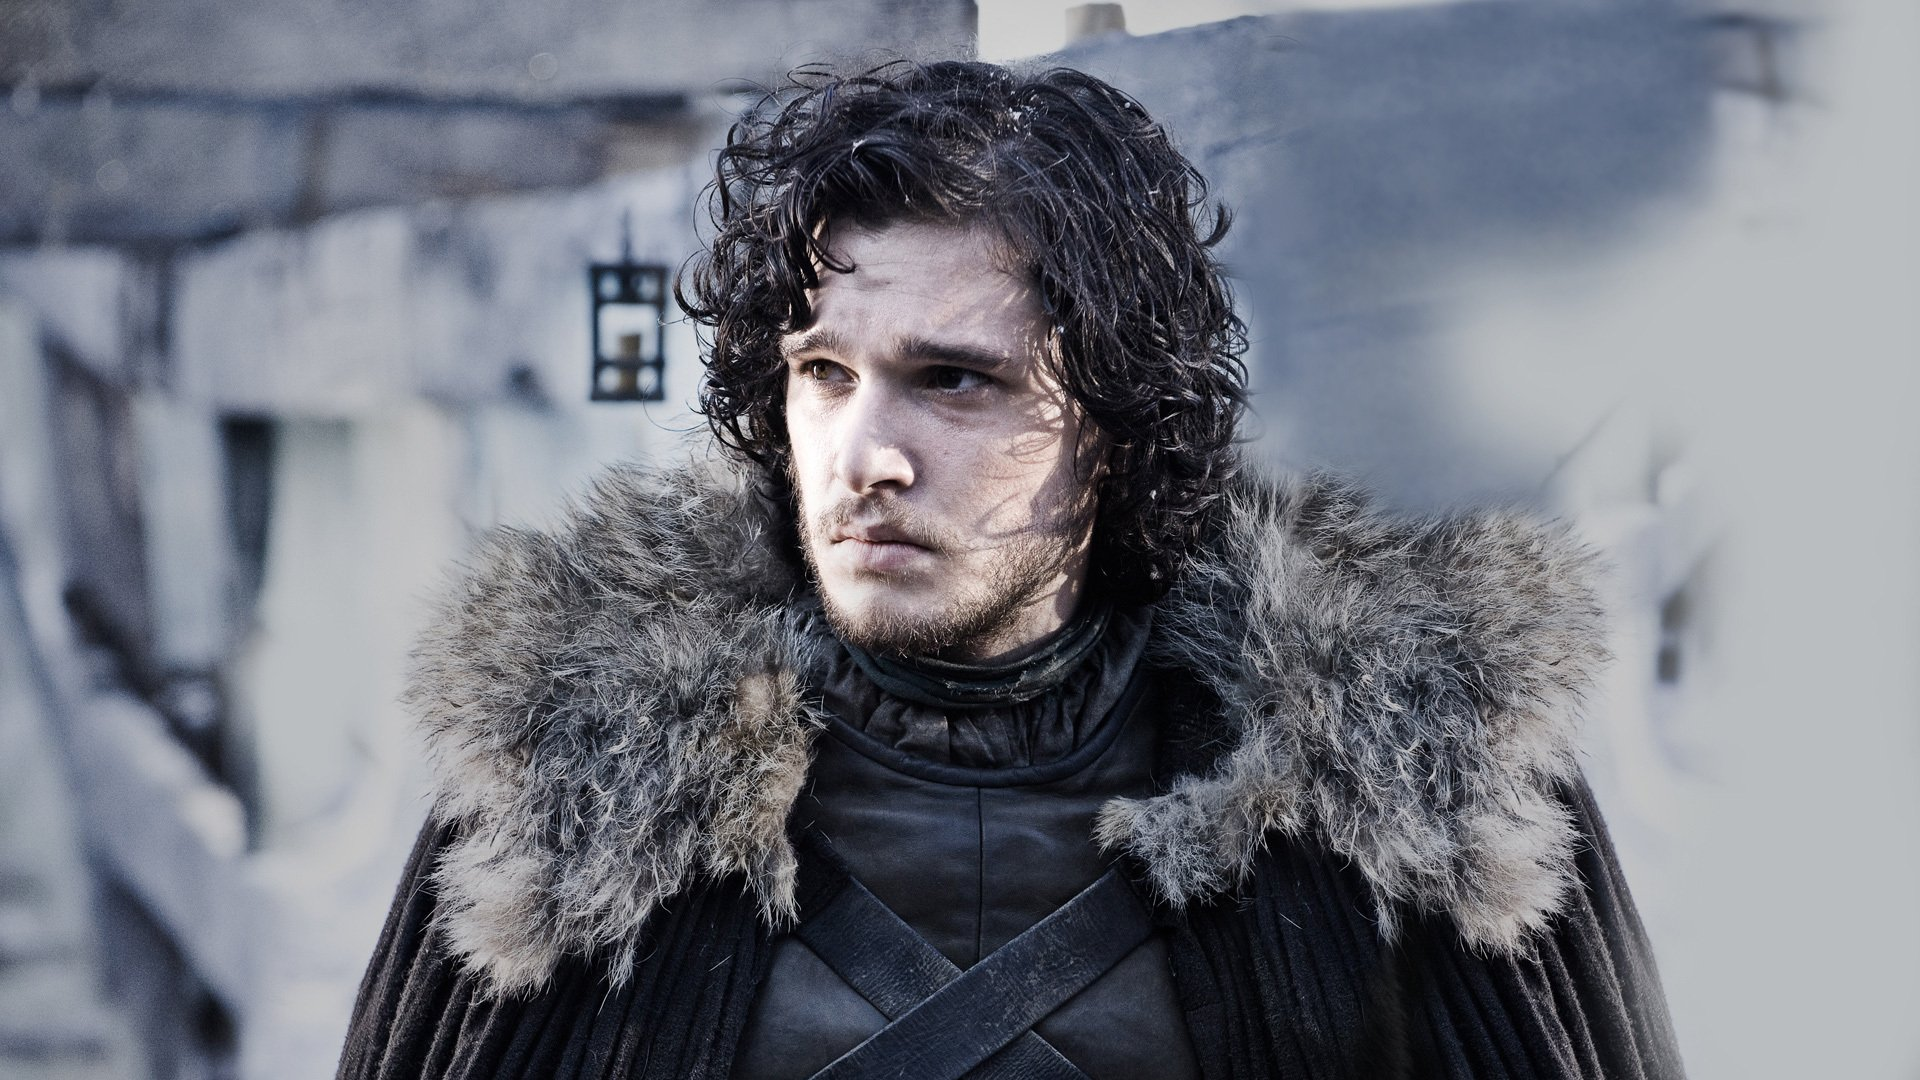 game of thrones, jon snow, фентези, джон сноу